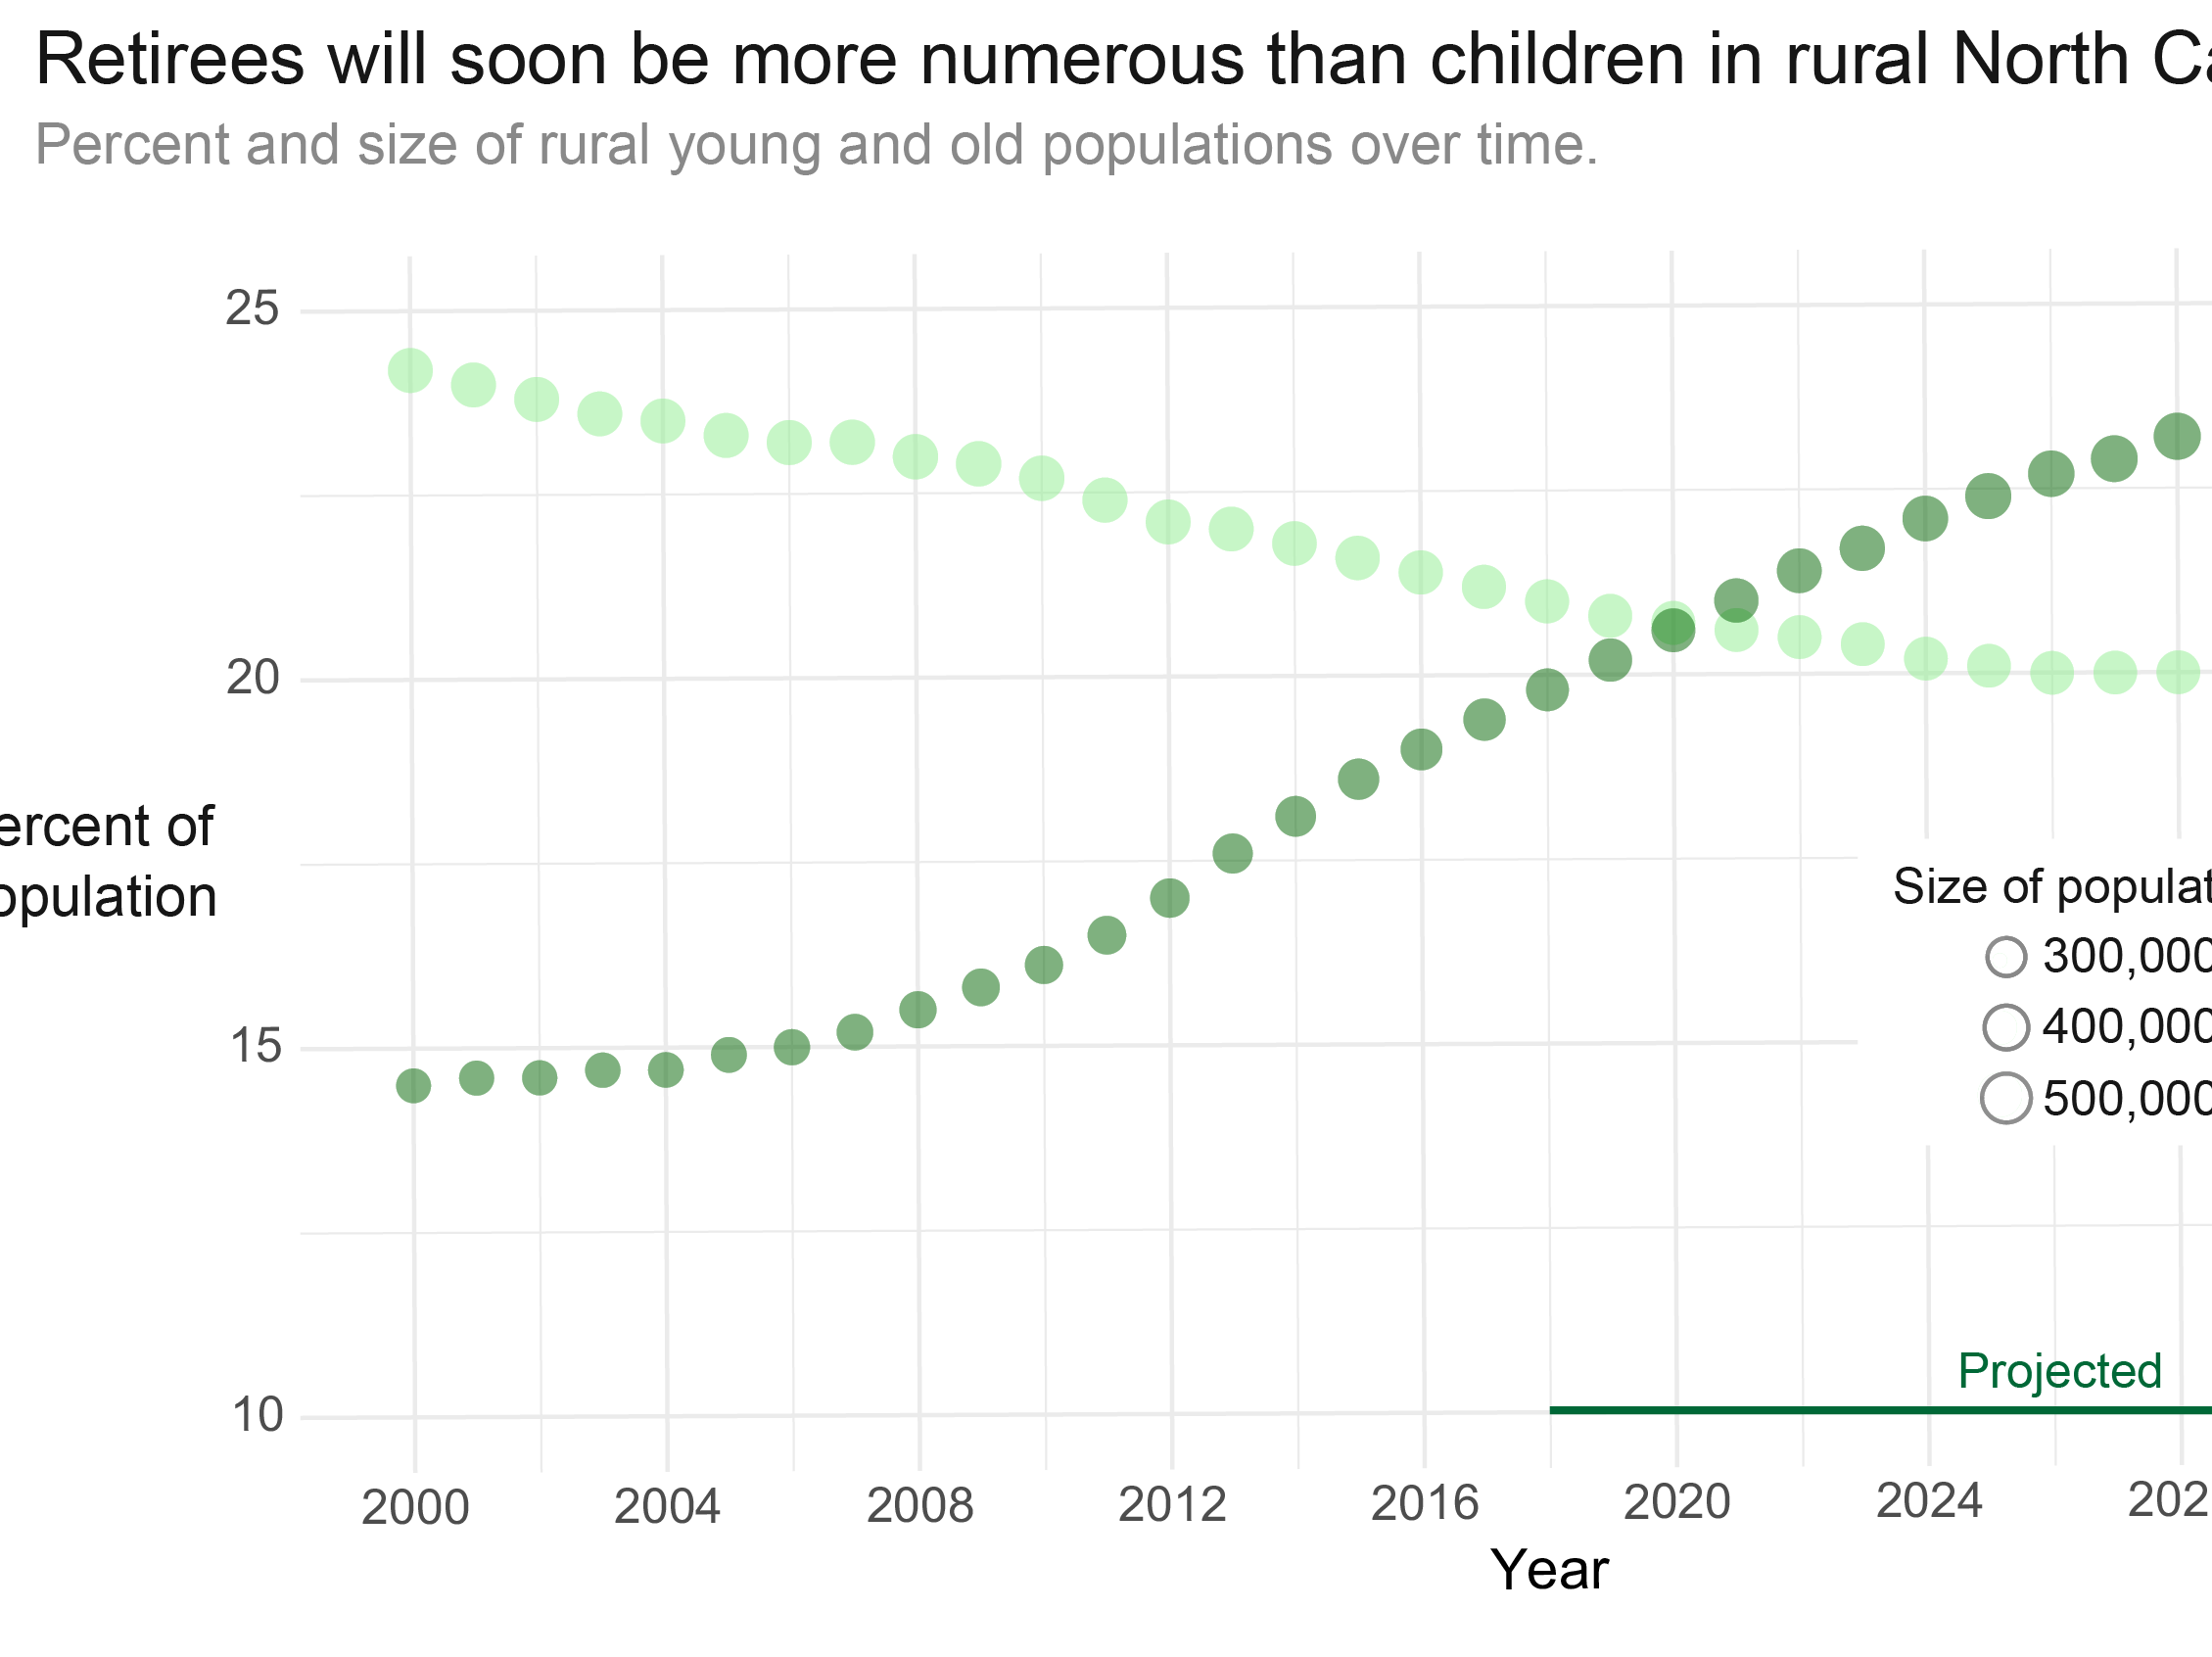 Rural residents who are 65 or older are increasing in both number and proportion.